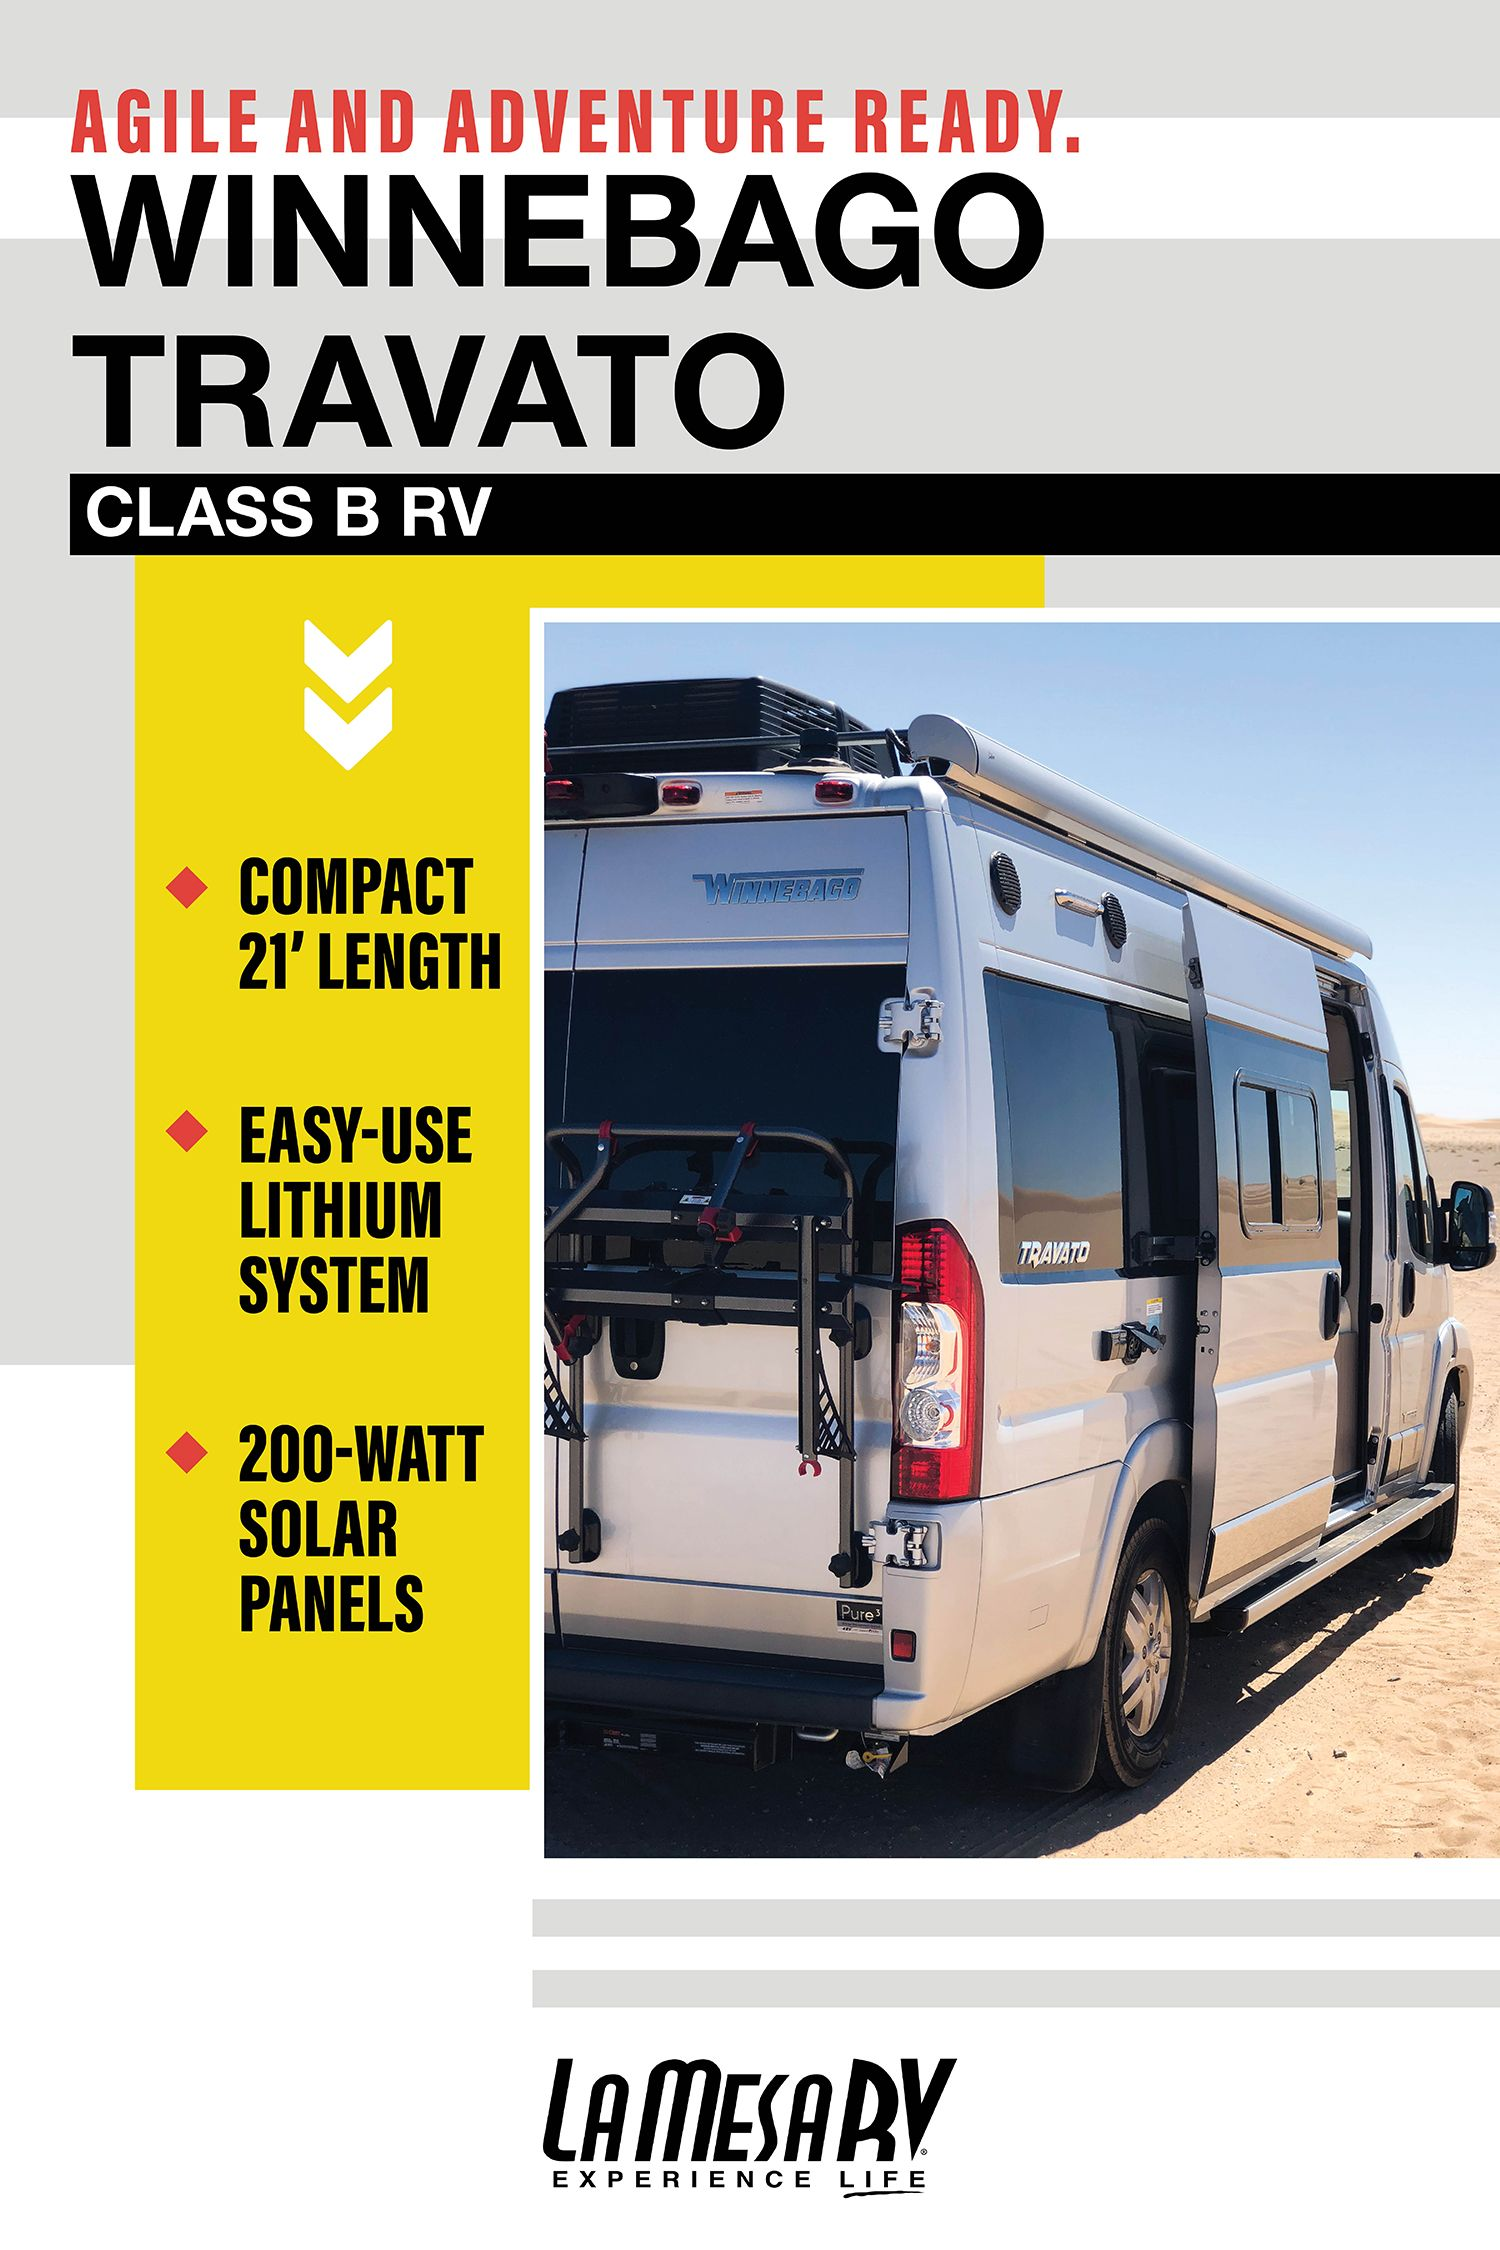 Looking For An Agile And Adventure Ready Rv To Take You To Your Travelgoals Meet The Travato By Winnebago With Images Rv Exterior Winnebago Rvs For Sale